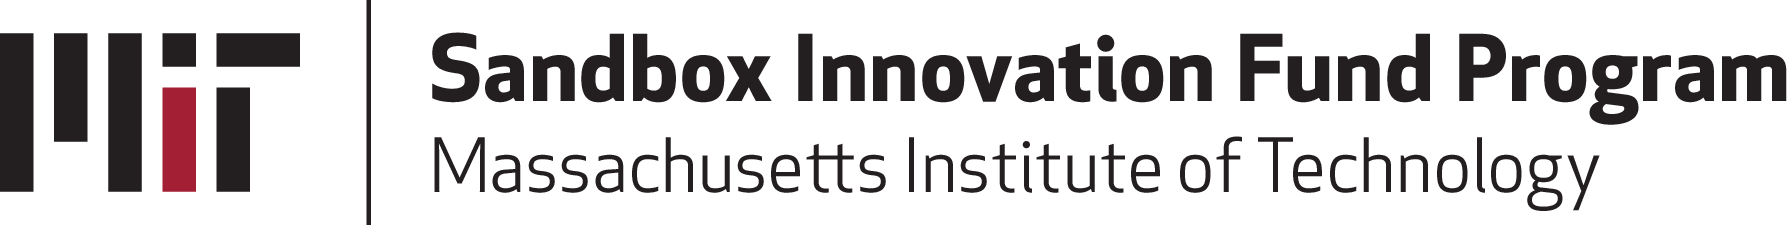 MIT Sandbox Innovation Fund Program